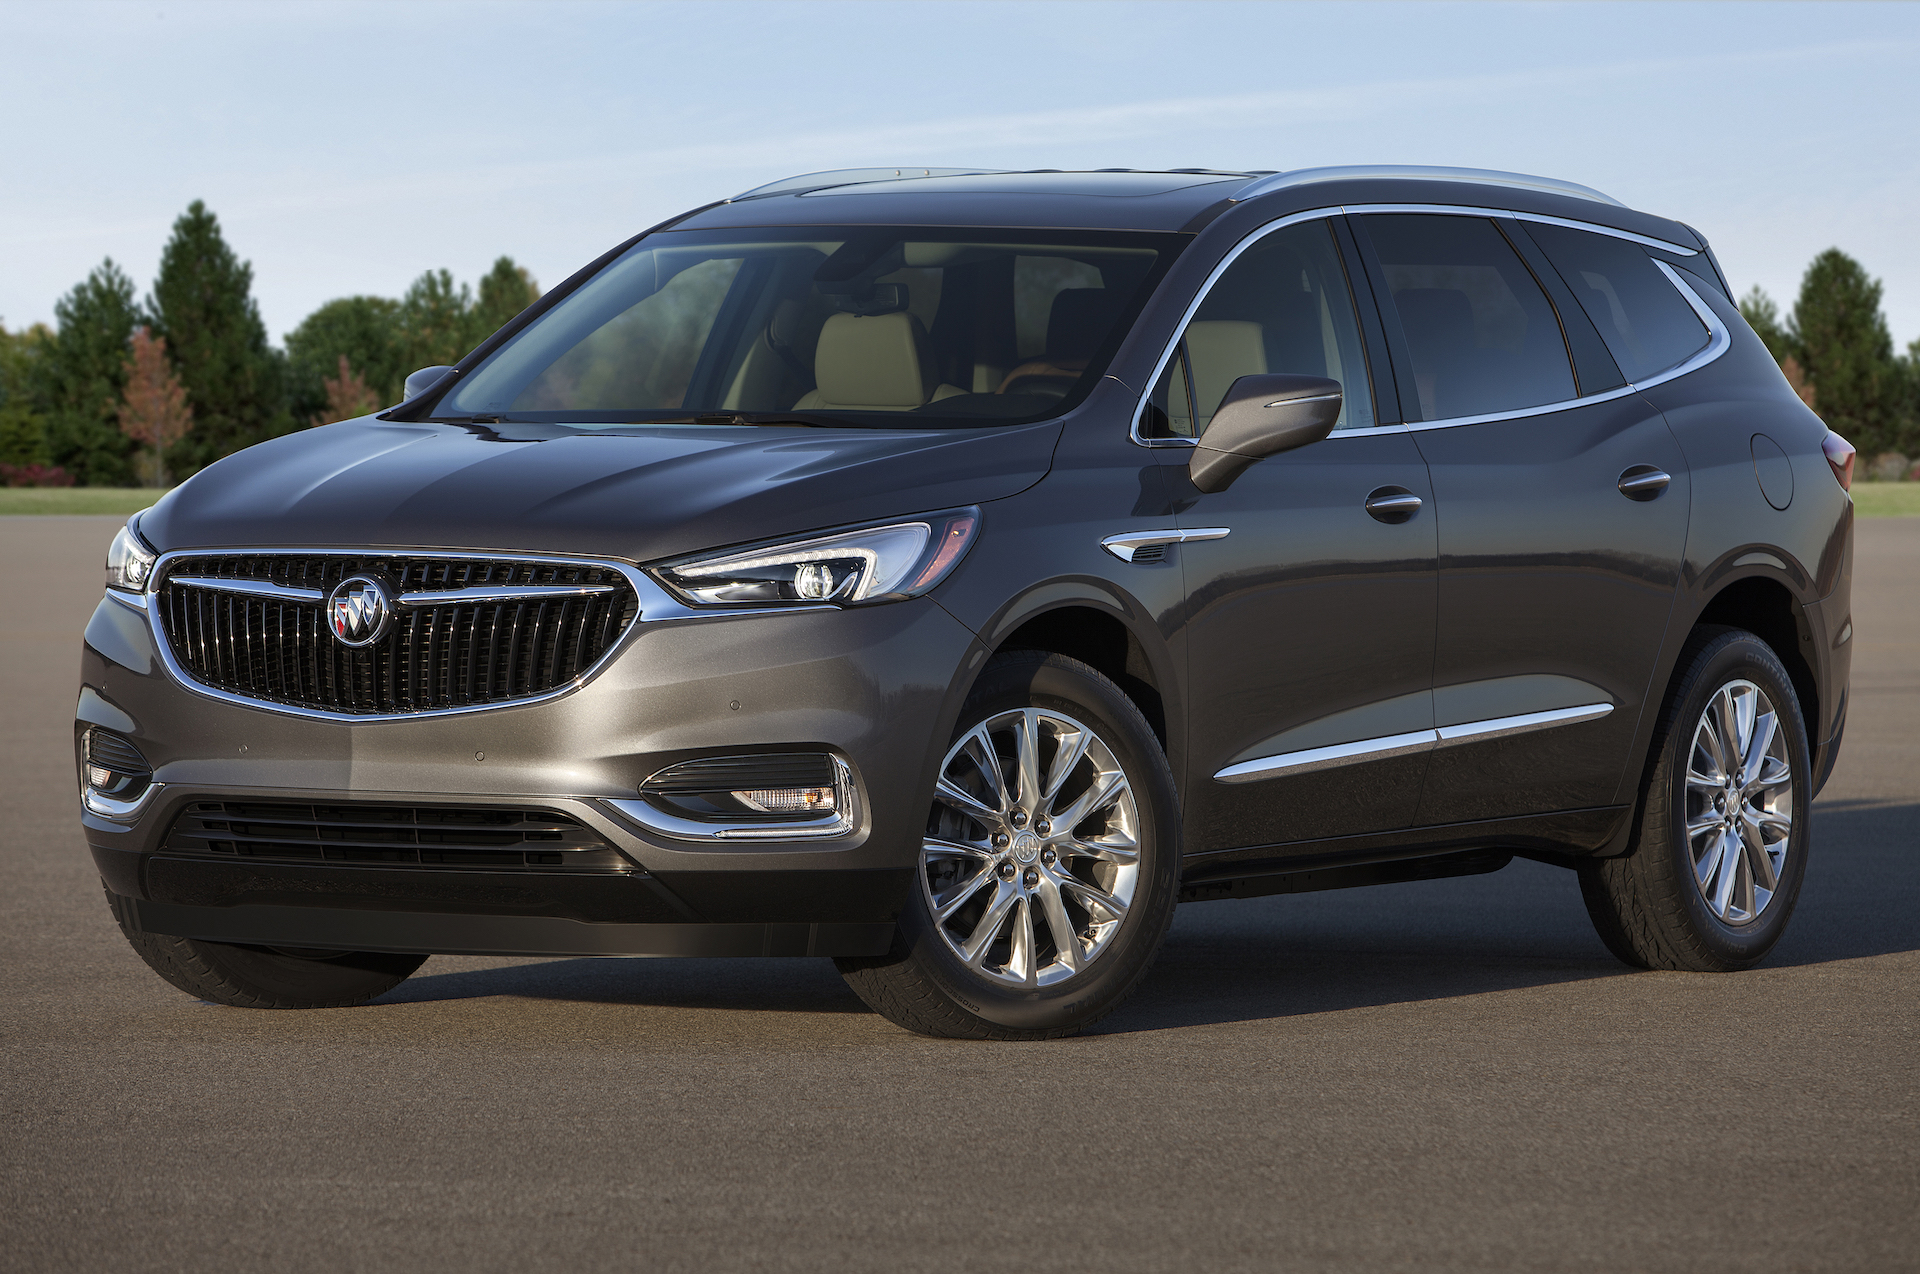 2018 Buick Enclave Vs. 2018 Acura Mdx: Compare Cars 2021 Buick Enclave Interior Pictures, Invoice Price, Lease